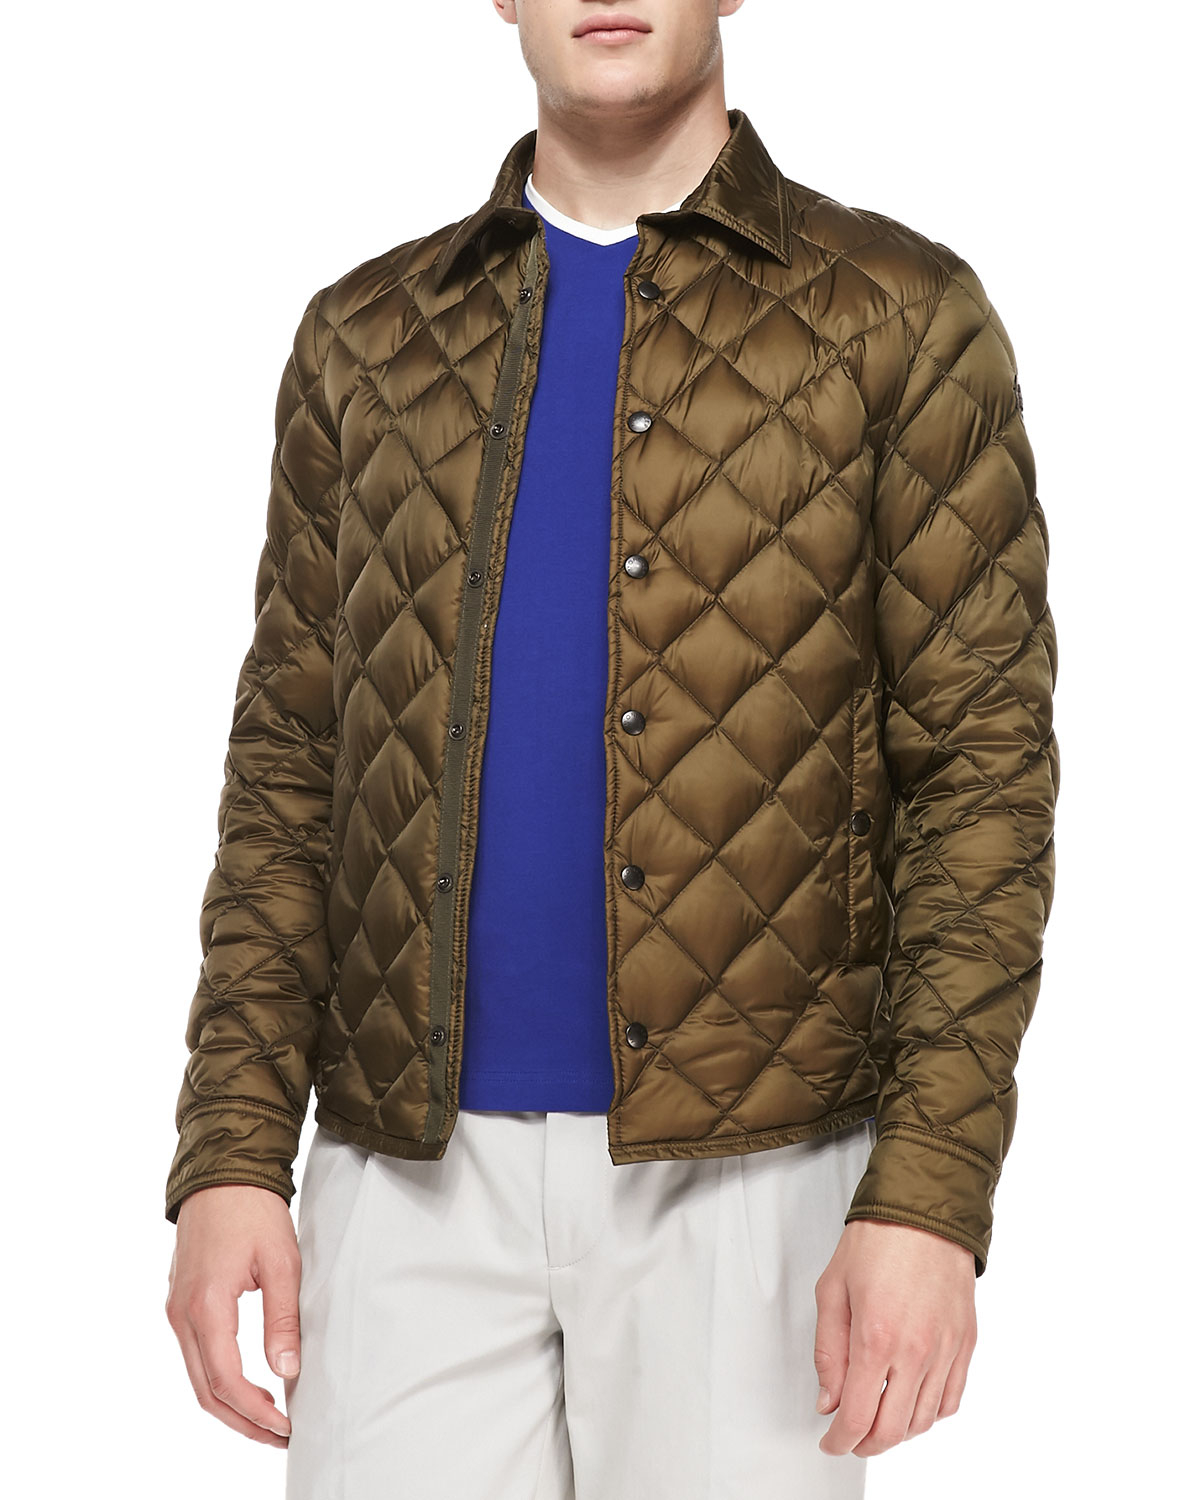 Shop women's quilted coats and puffer jackets from Burberry, featuring warm down-filled quilted jackets, parkas, gilets, bombers and puffers. Green Purple Red Yellow White MISCELLANEOUS. Show Results Clear. Size ALL XXS XS S M L XL XXL. Show Results Clear.